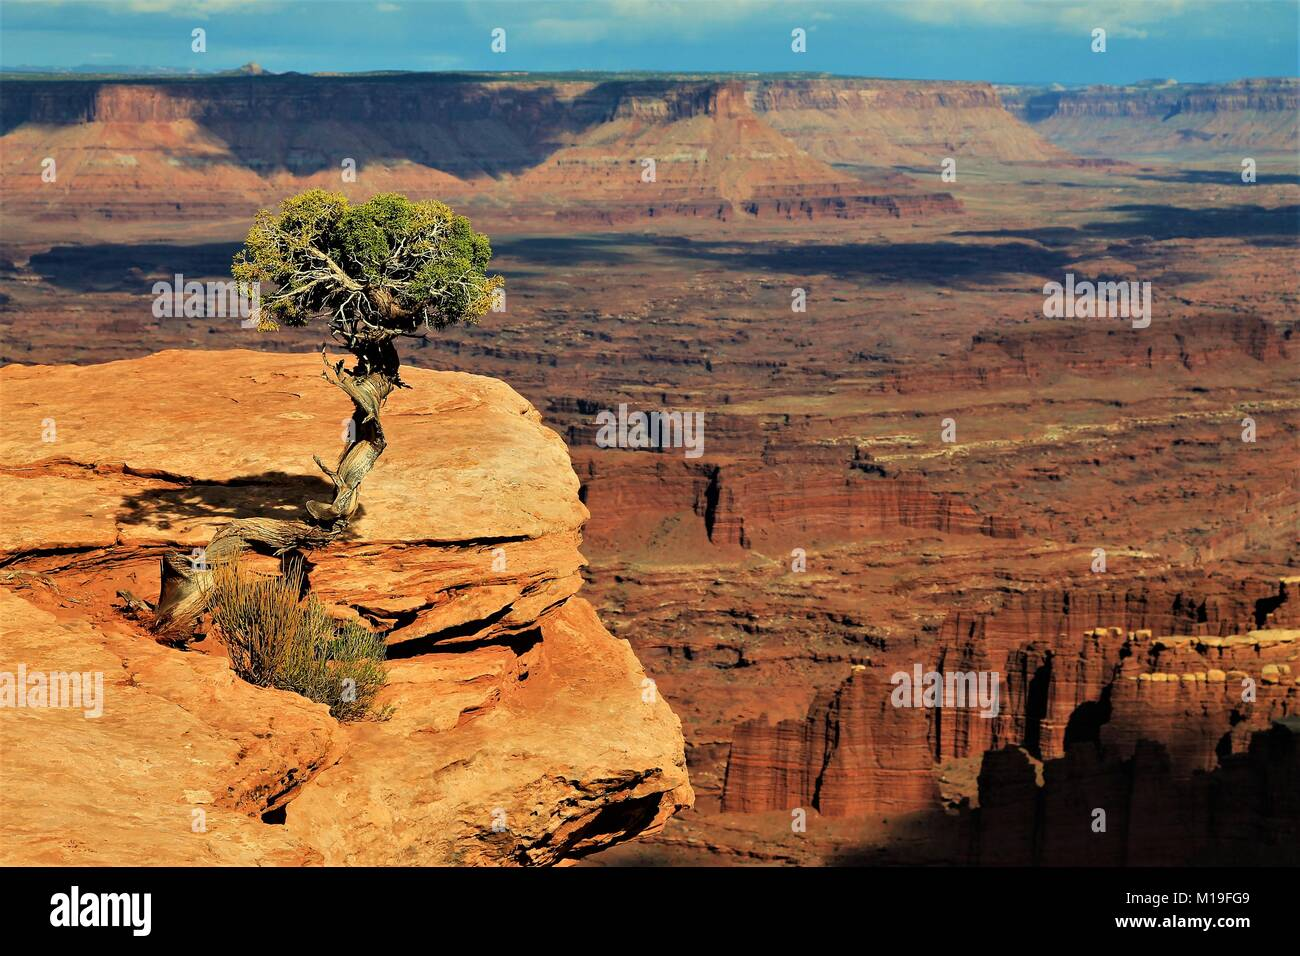 Exploration of as many  US National Parks as possible has been a goal we are successfully and happily in the process - Stock Image